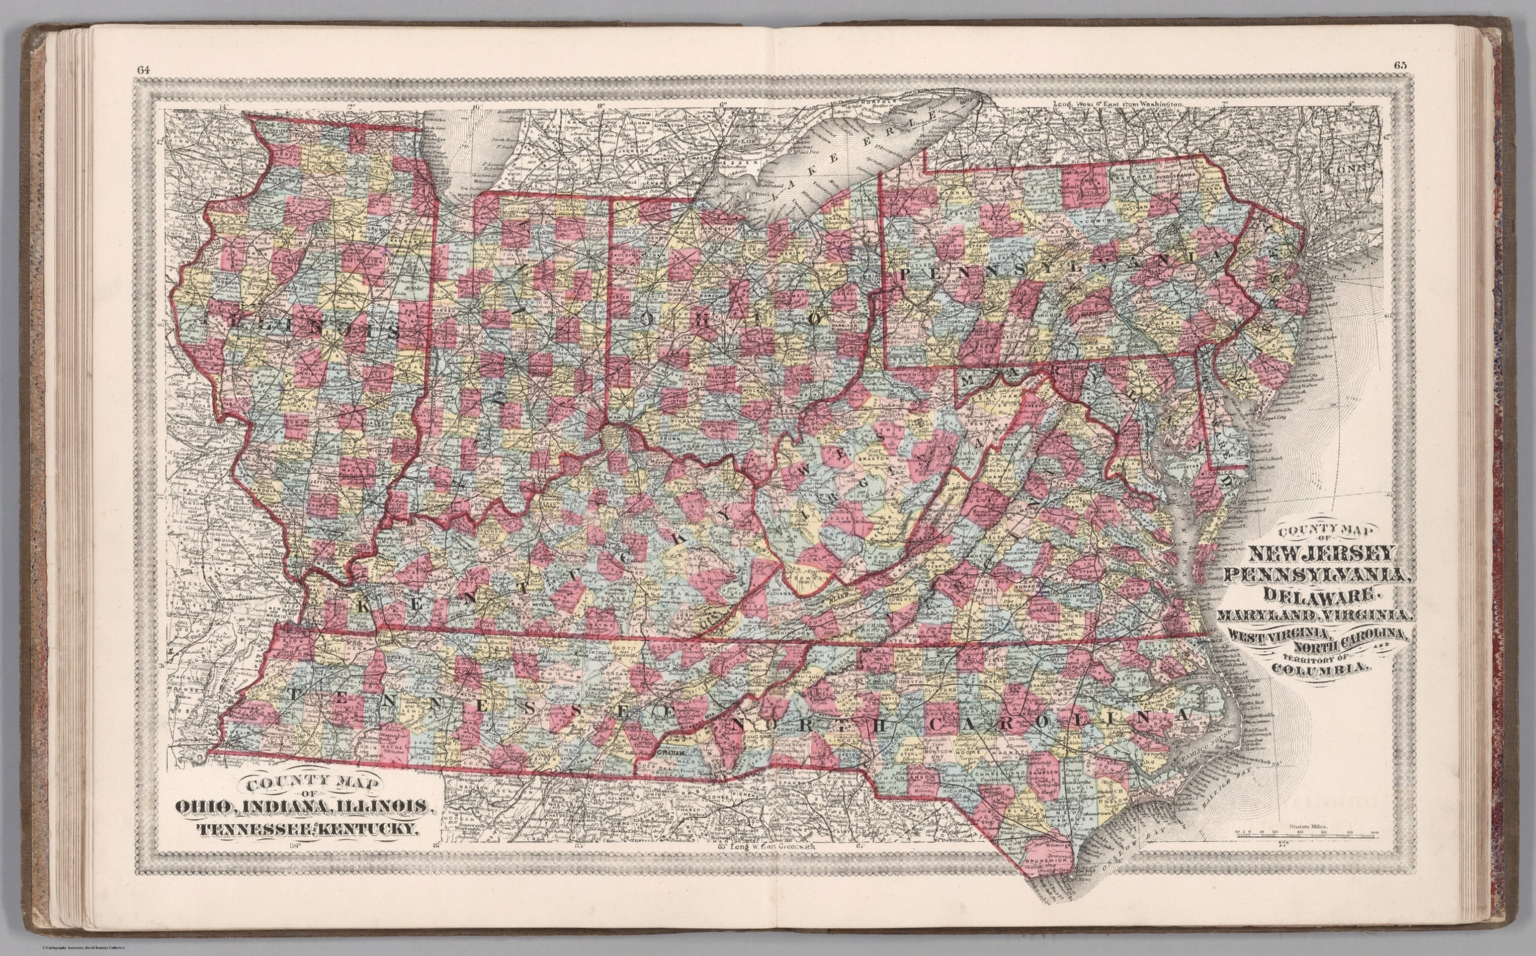 County map of Ohio, Indiana, Illinois,Tennessee and Kentucky - David on map of state of pennslyvannia, map of michigan and new york, map of northern va and pennsylvania, map of lakes in ohio, gold deposit maps pennsylvania, map of new york and washington dc, p of pennsylvania, map of eastern ohio, map of philadelphia and pennsylvania, printable map of south west pennsylvania, map michigan and pennsylvania, state land map of pennsylvania, map of ohio outline, mid west city map pennsylvania, map of ohio in 1830, map of connecticut and pennsylvania, pa road maps pennsylvania, map of indian villages in ohio, map of florida and pennsylvania, west virginia county map pennsylvania,